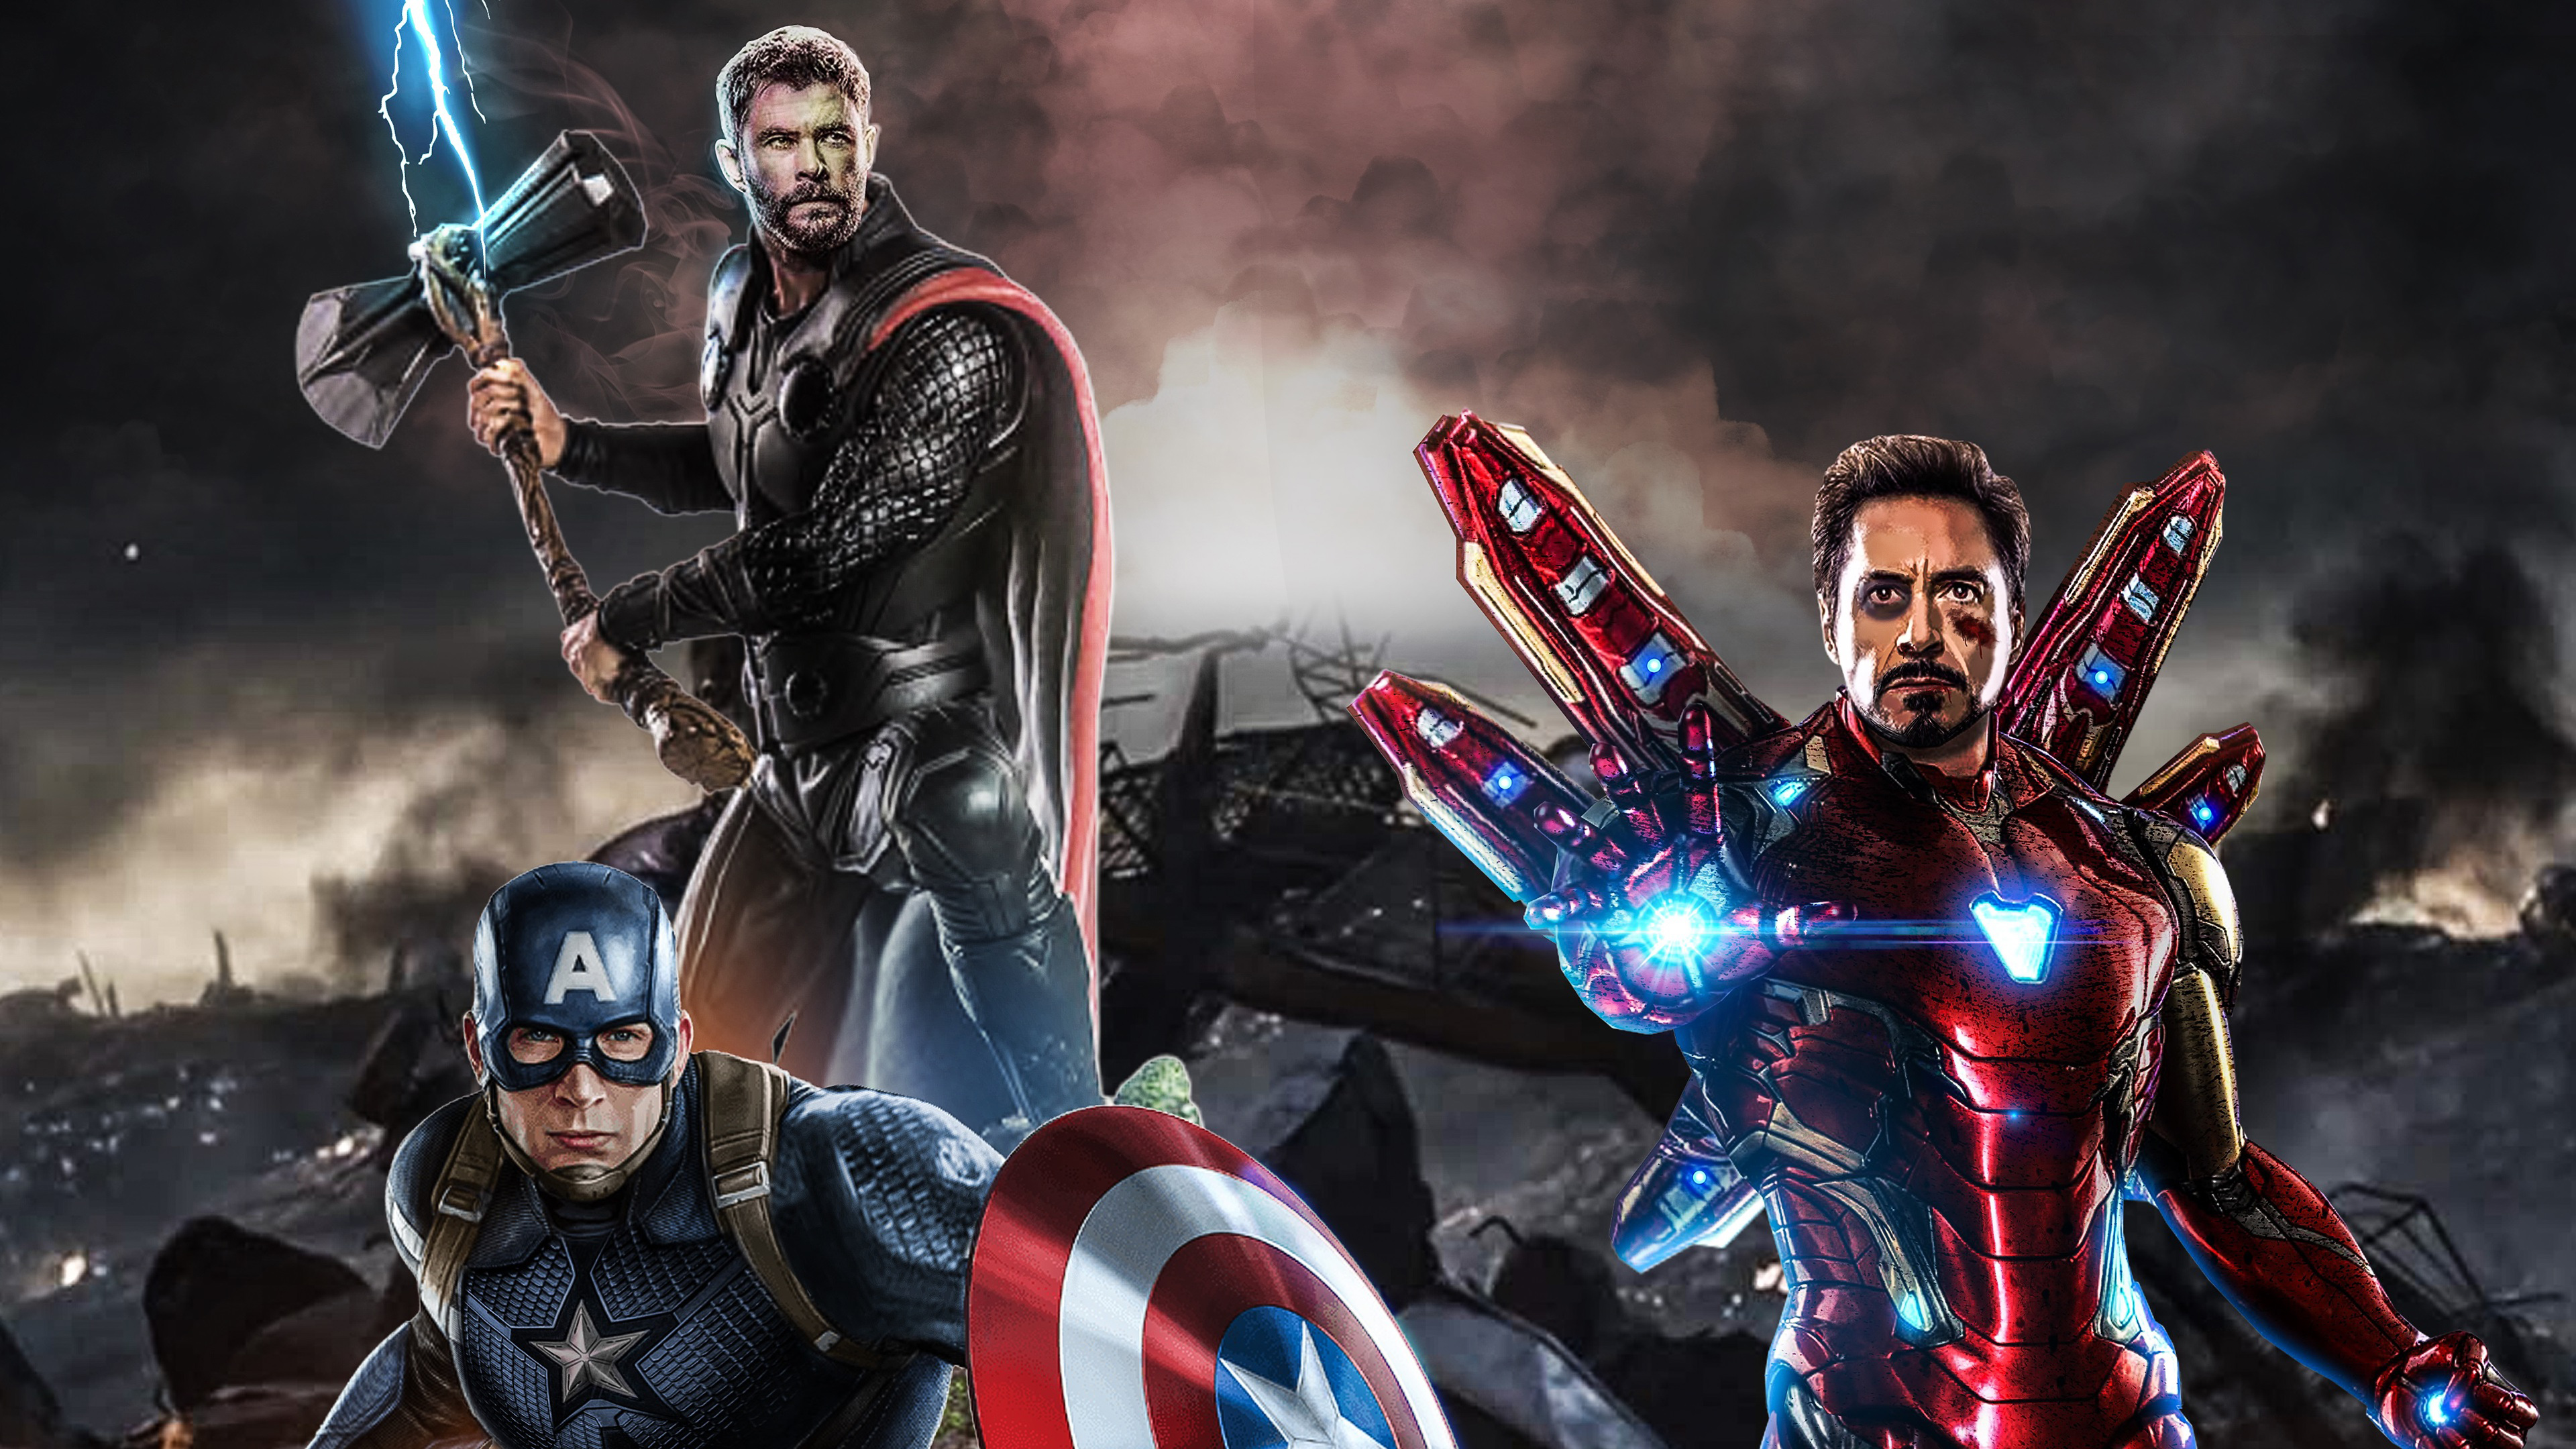 Avengers Endgame The Big Three Hd Superheroes 4k Wallpapers Images Backgrounds Photos And Pictures